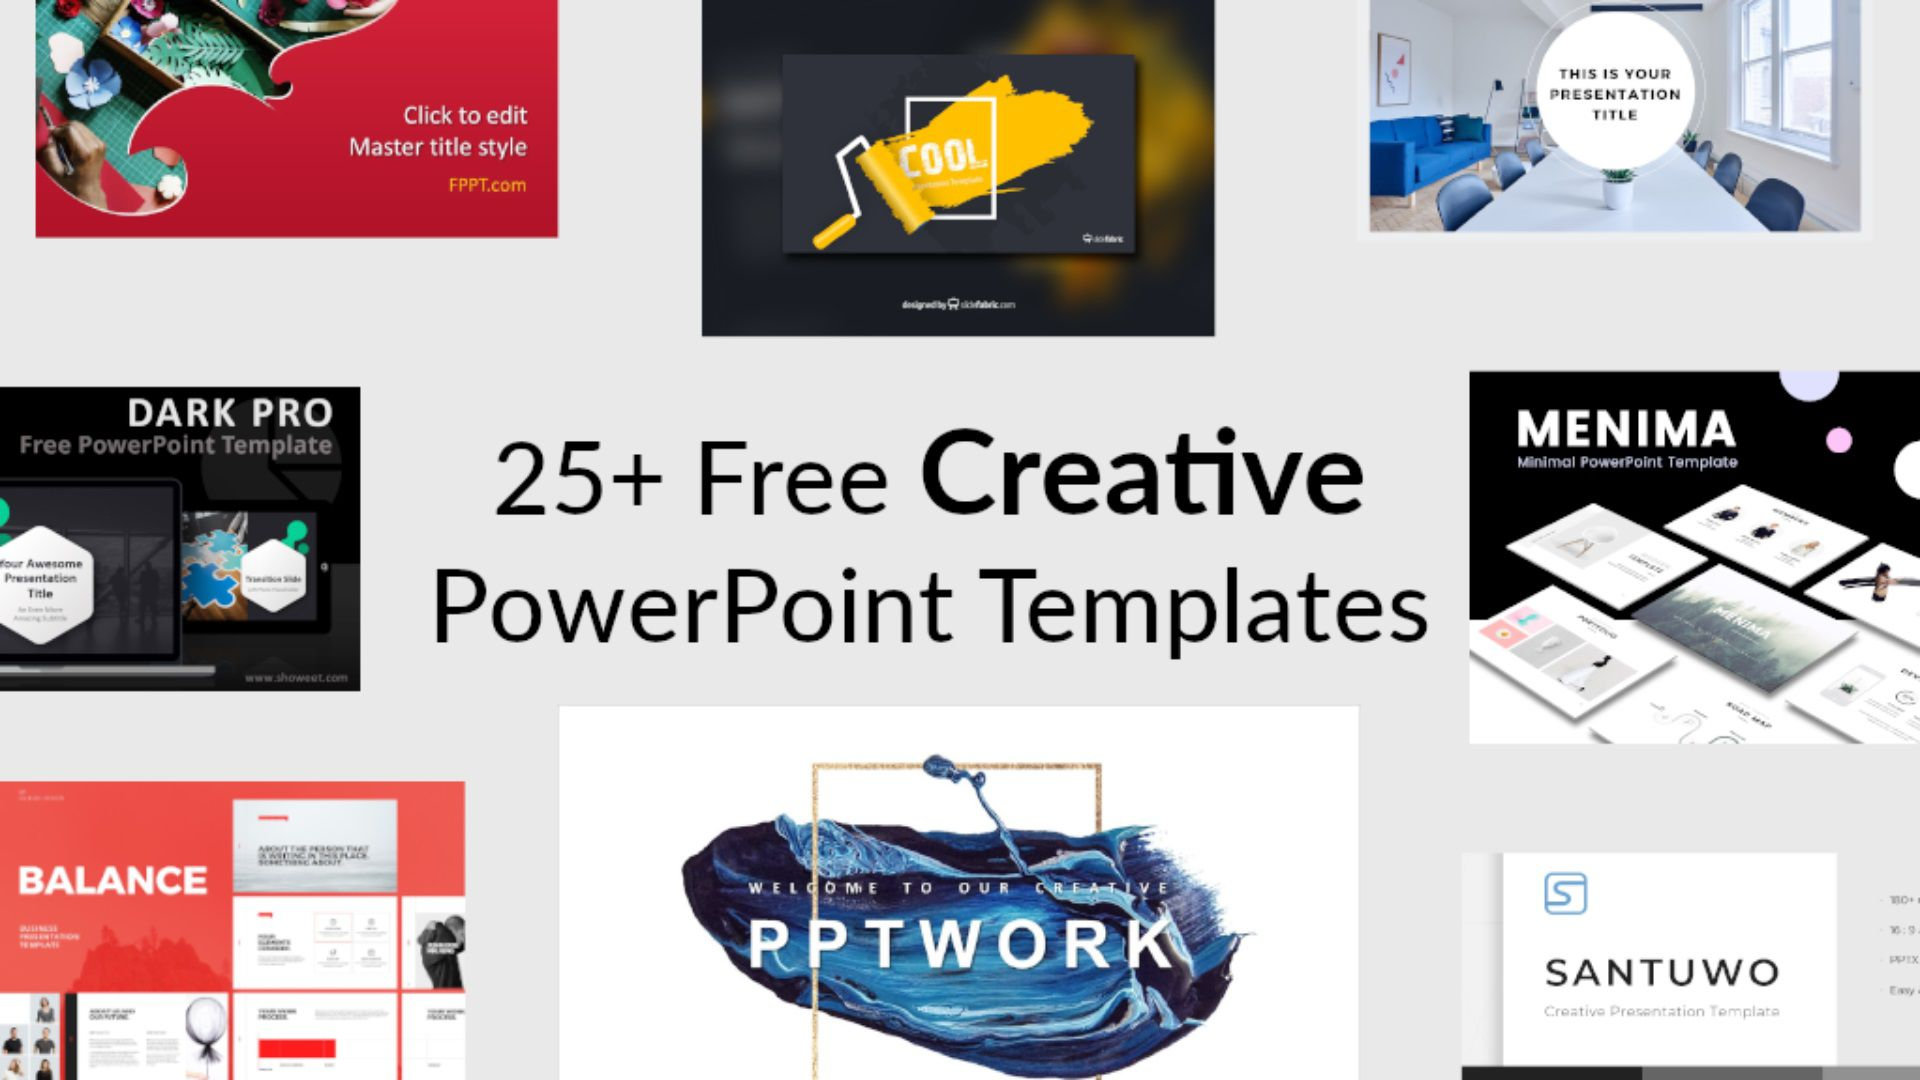 000 Stirring Free Powerpoint Template Design Highest Clarity  For Student Food BusinesFull